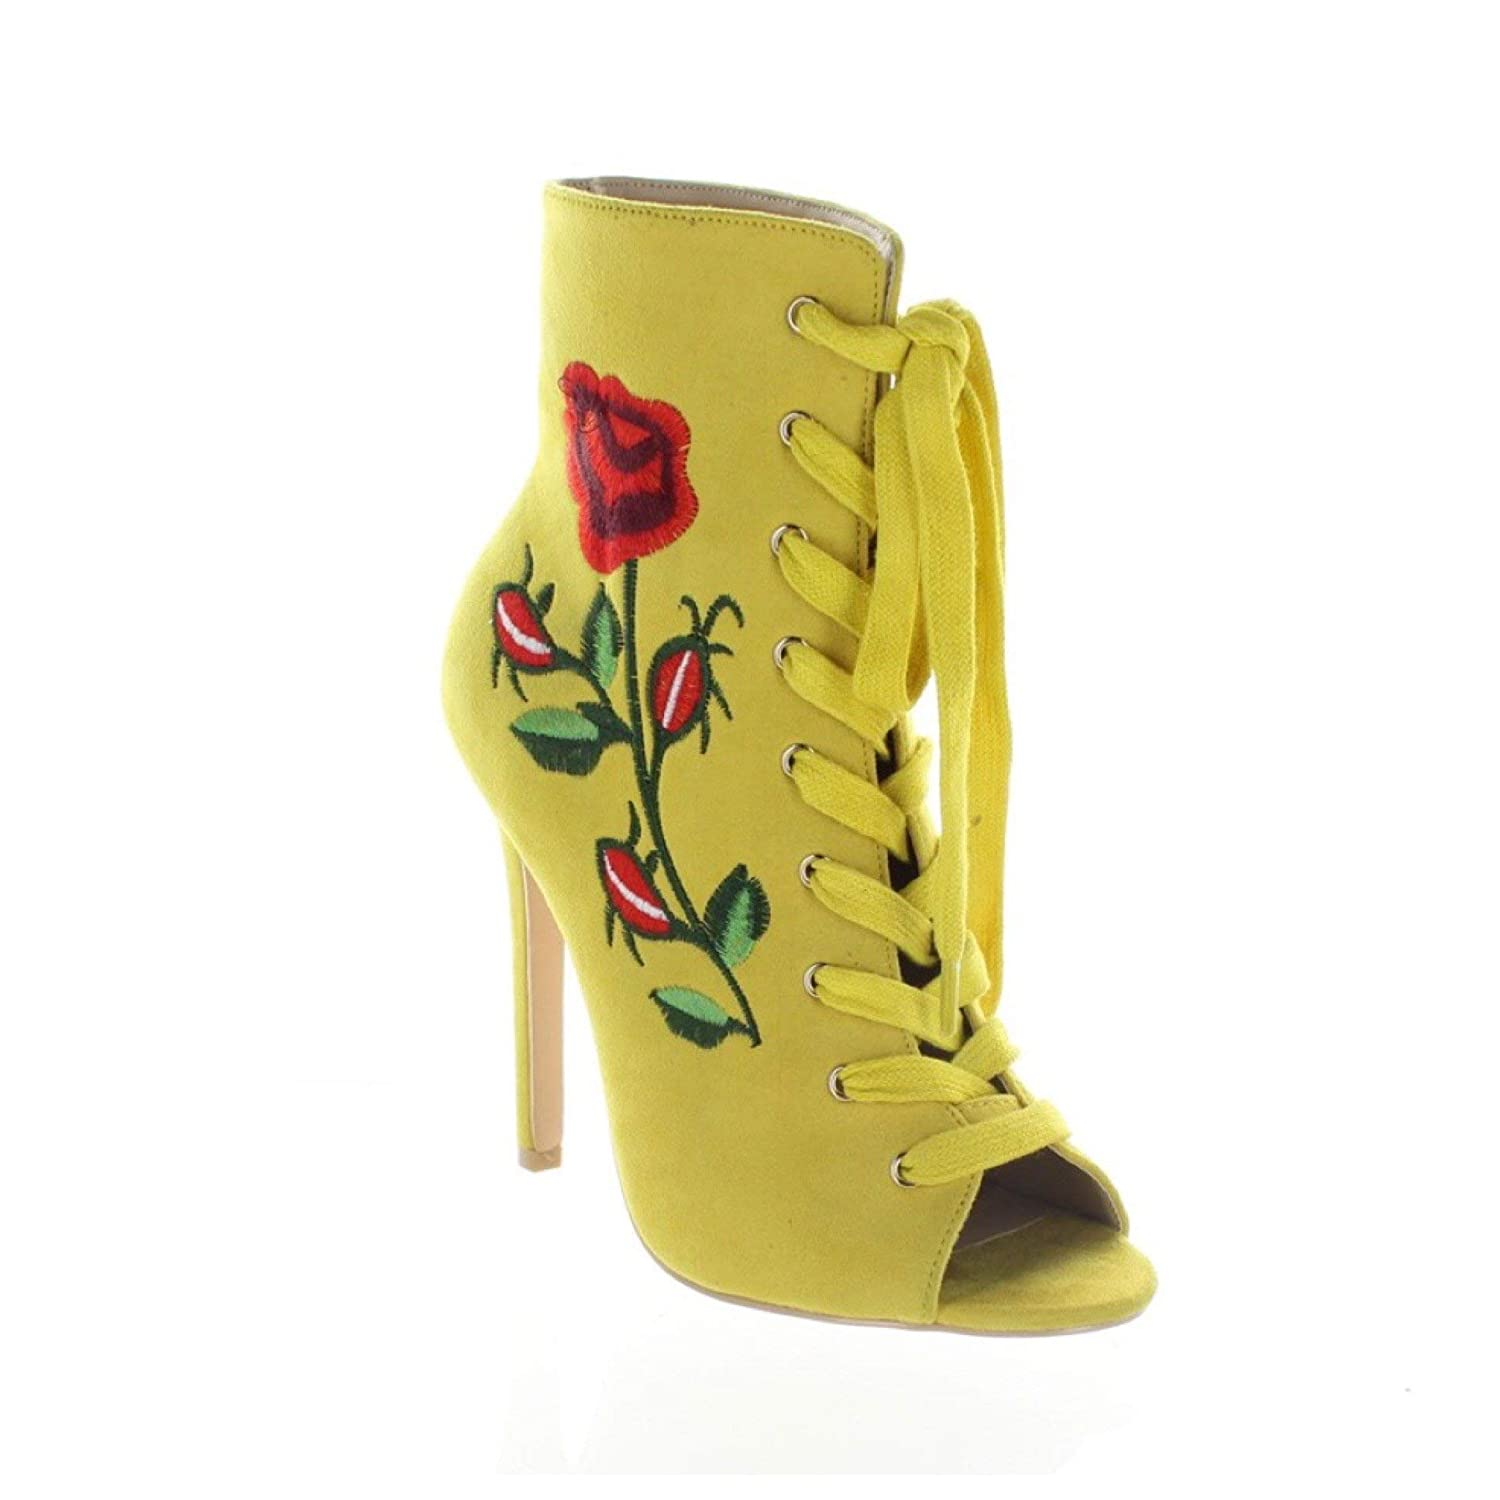 f32c89174 Amazon.com | Mona Mia Embroidered Floral Rose Lace Up Ankle Boot - Mustard  Yellow | Ankle & Bootie